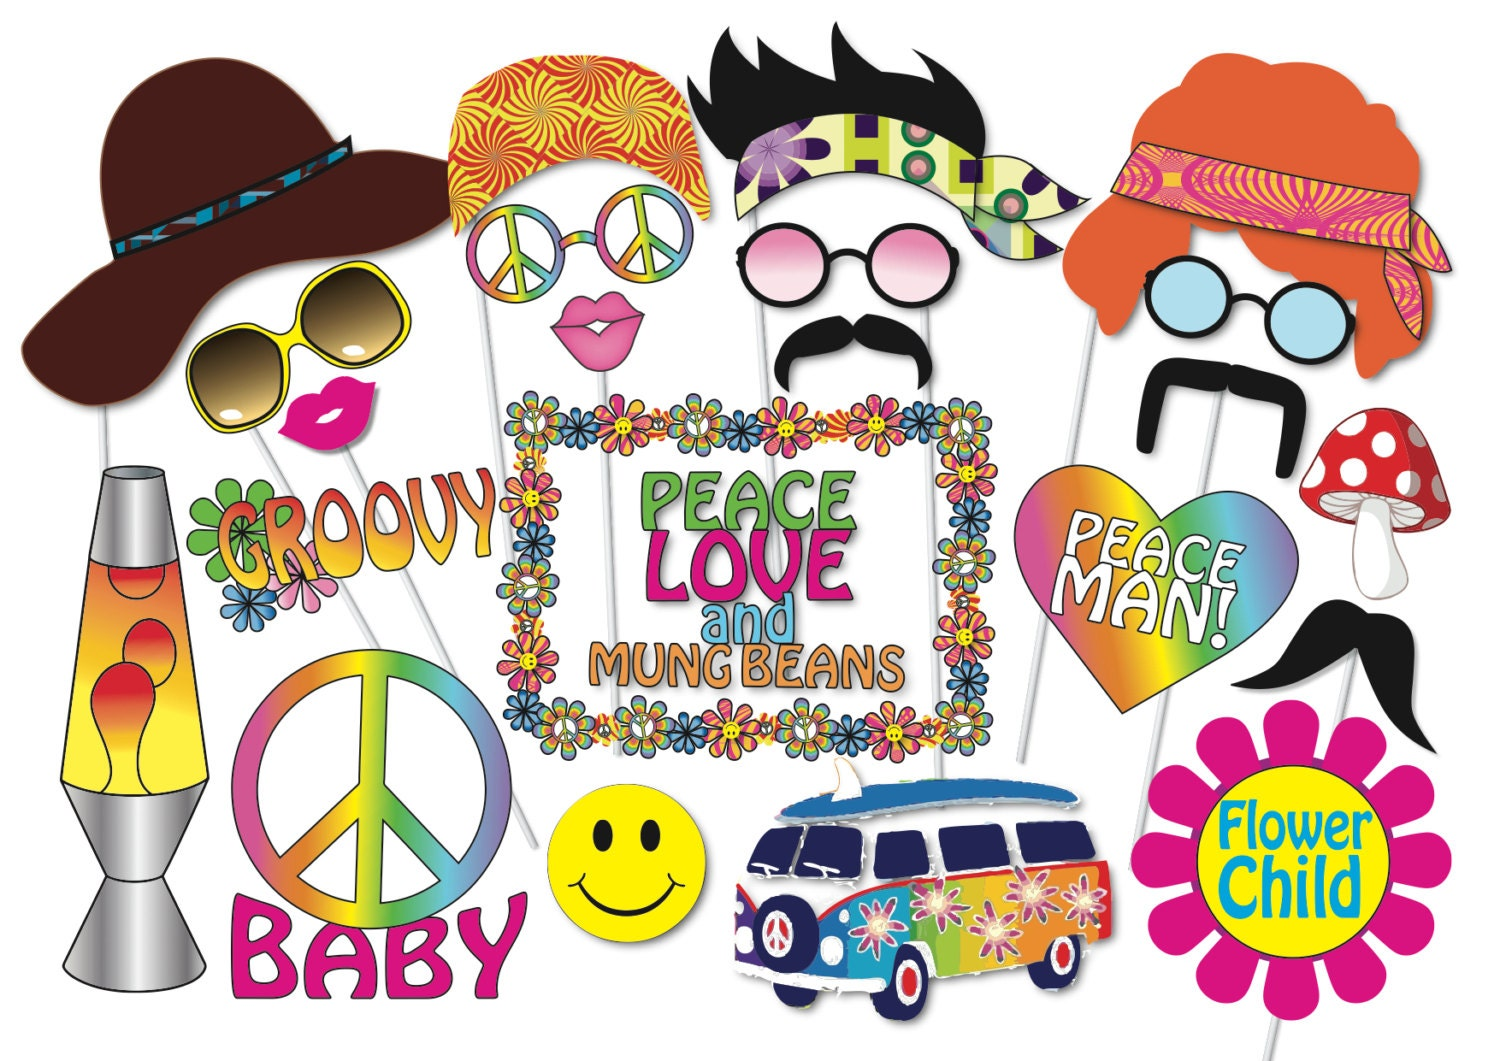 Hippie party on pinterest 60s party hippie birthday for 60s party decoration